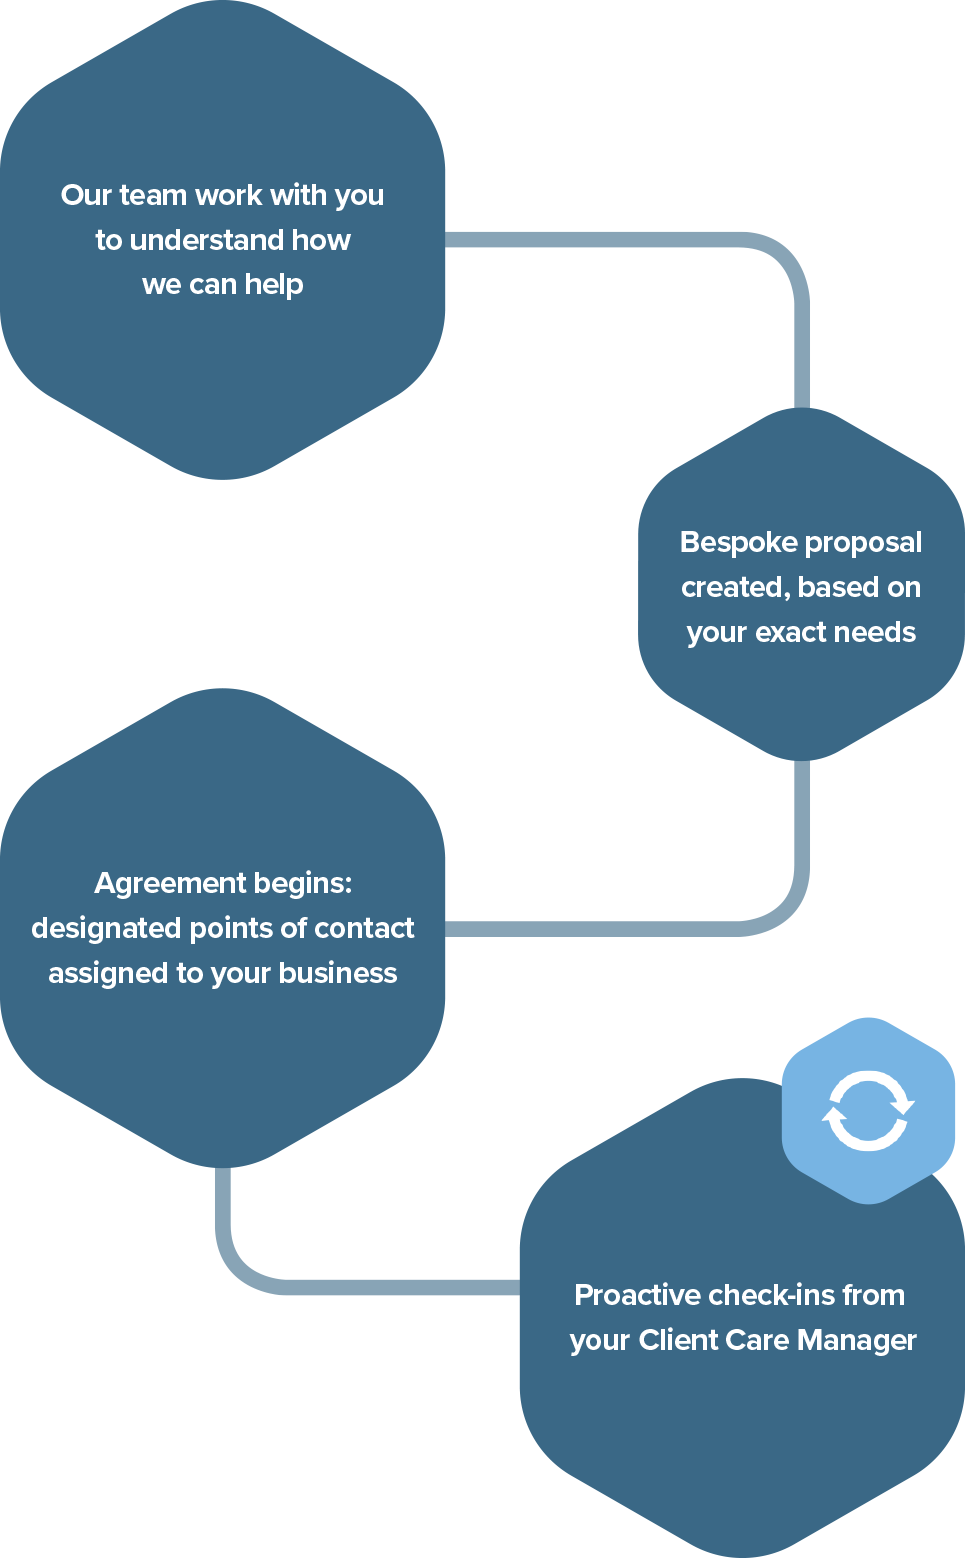 Our team work with you to understand how we can help / Bespoke proposal created, based on your exact needs / Agreement begins: designated points of contact assigned to your business / Proactive check-ins from your Client Care Manager